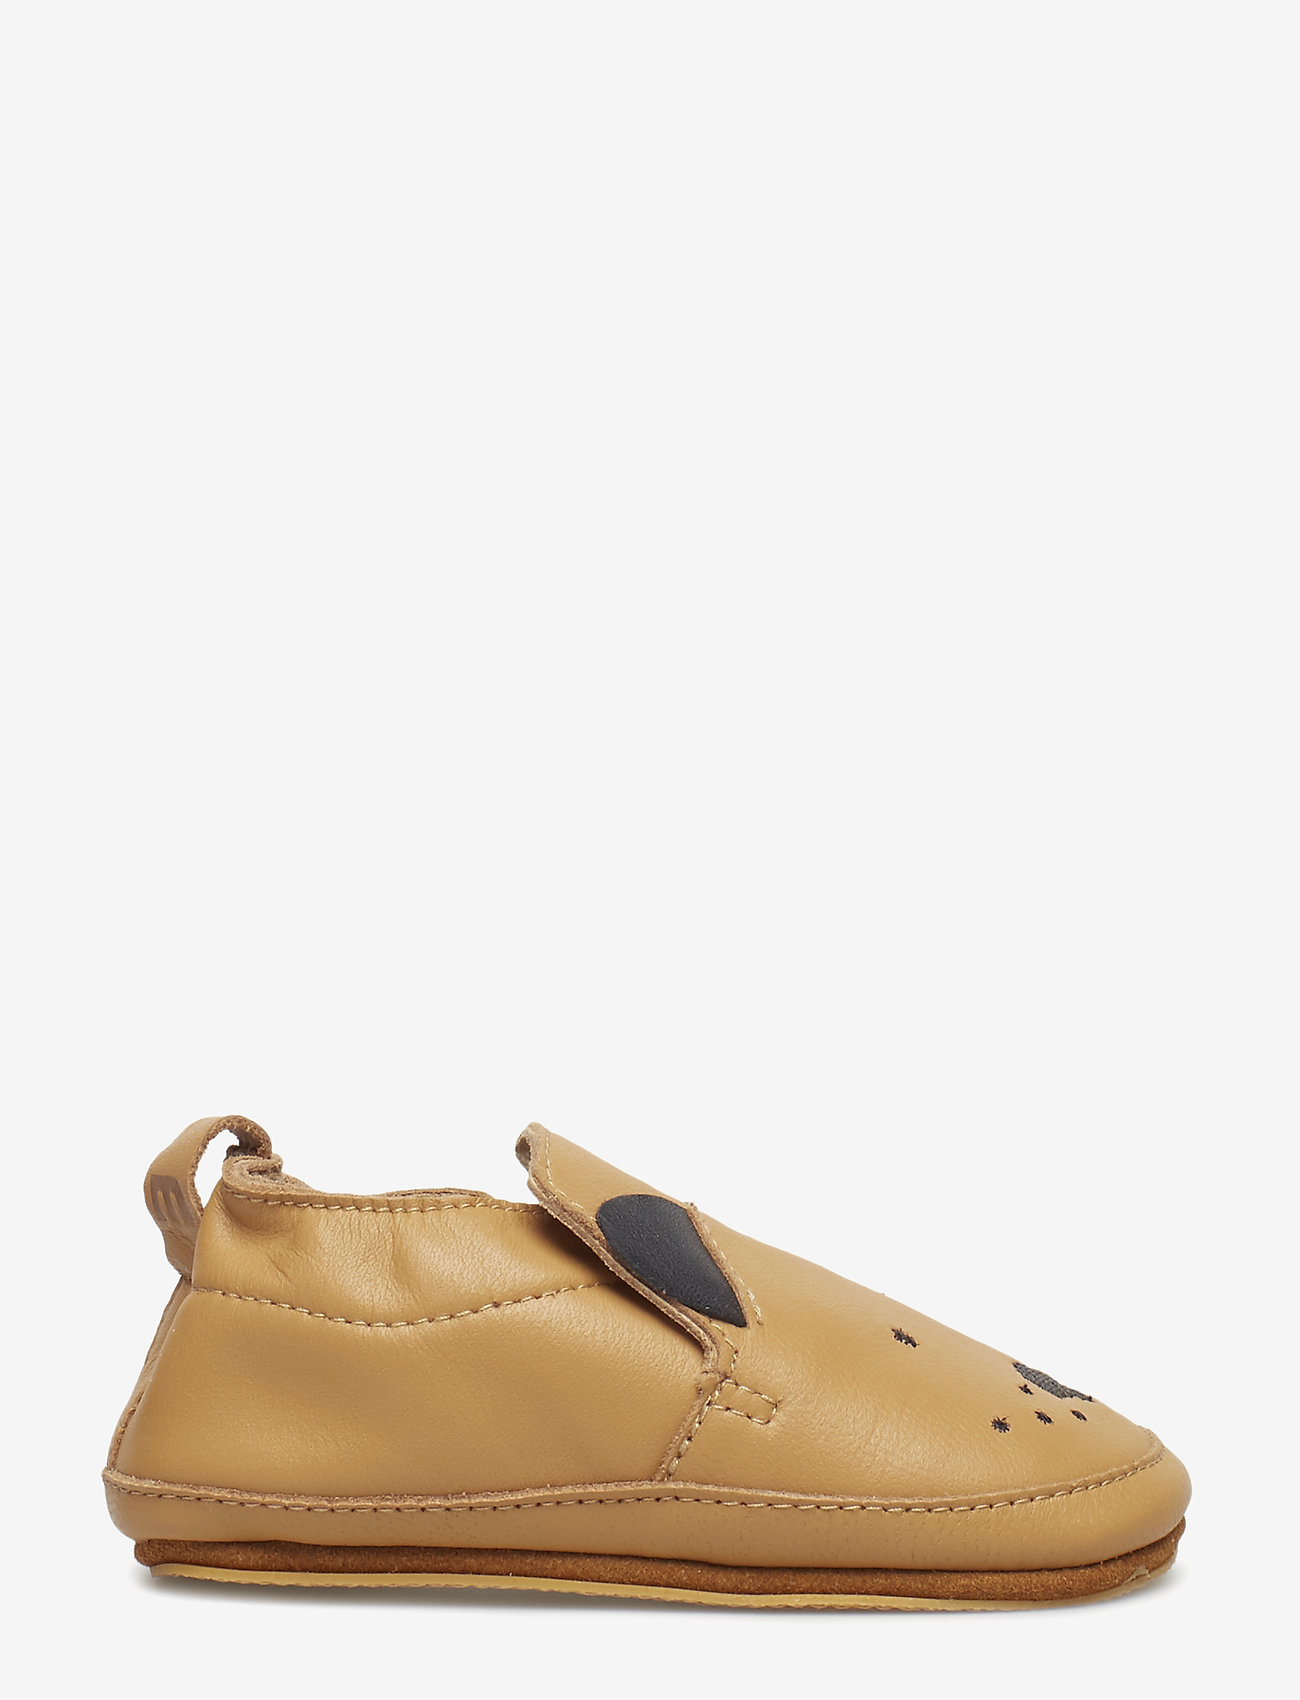 Melton - Luxury Leather Shoe - Dog - schuhe - camel - 1